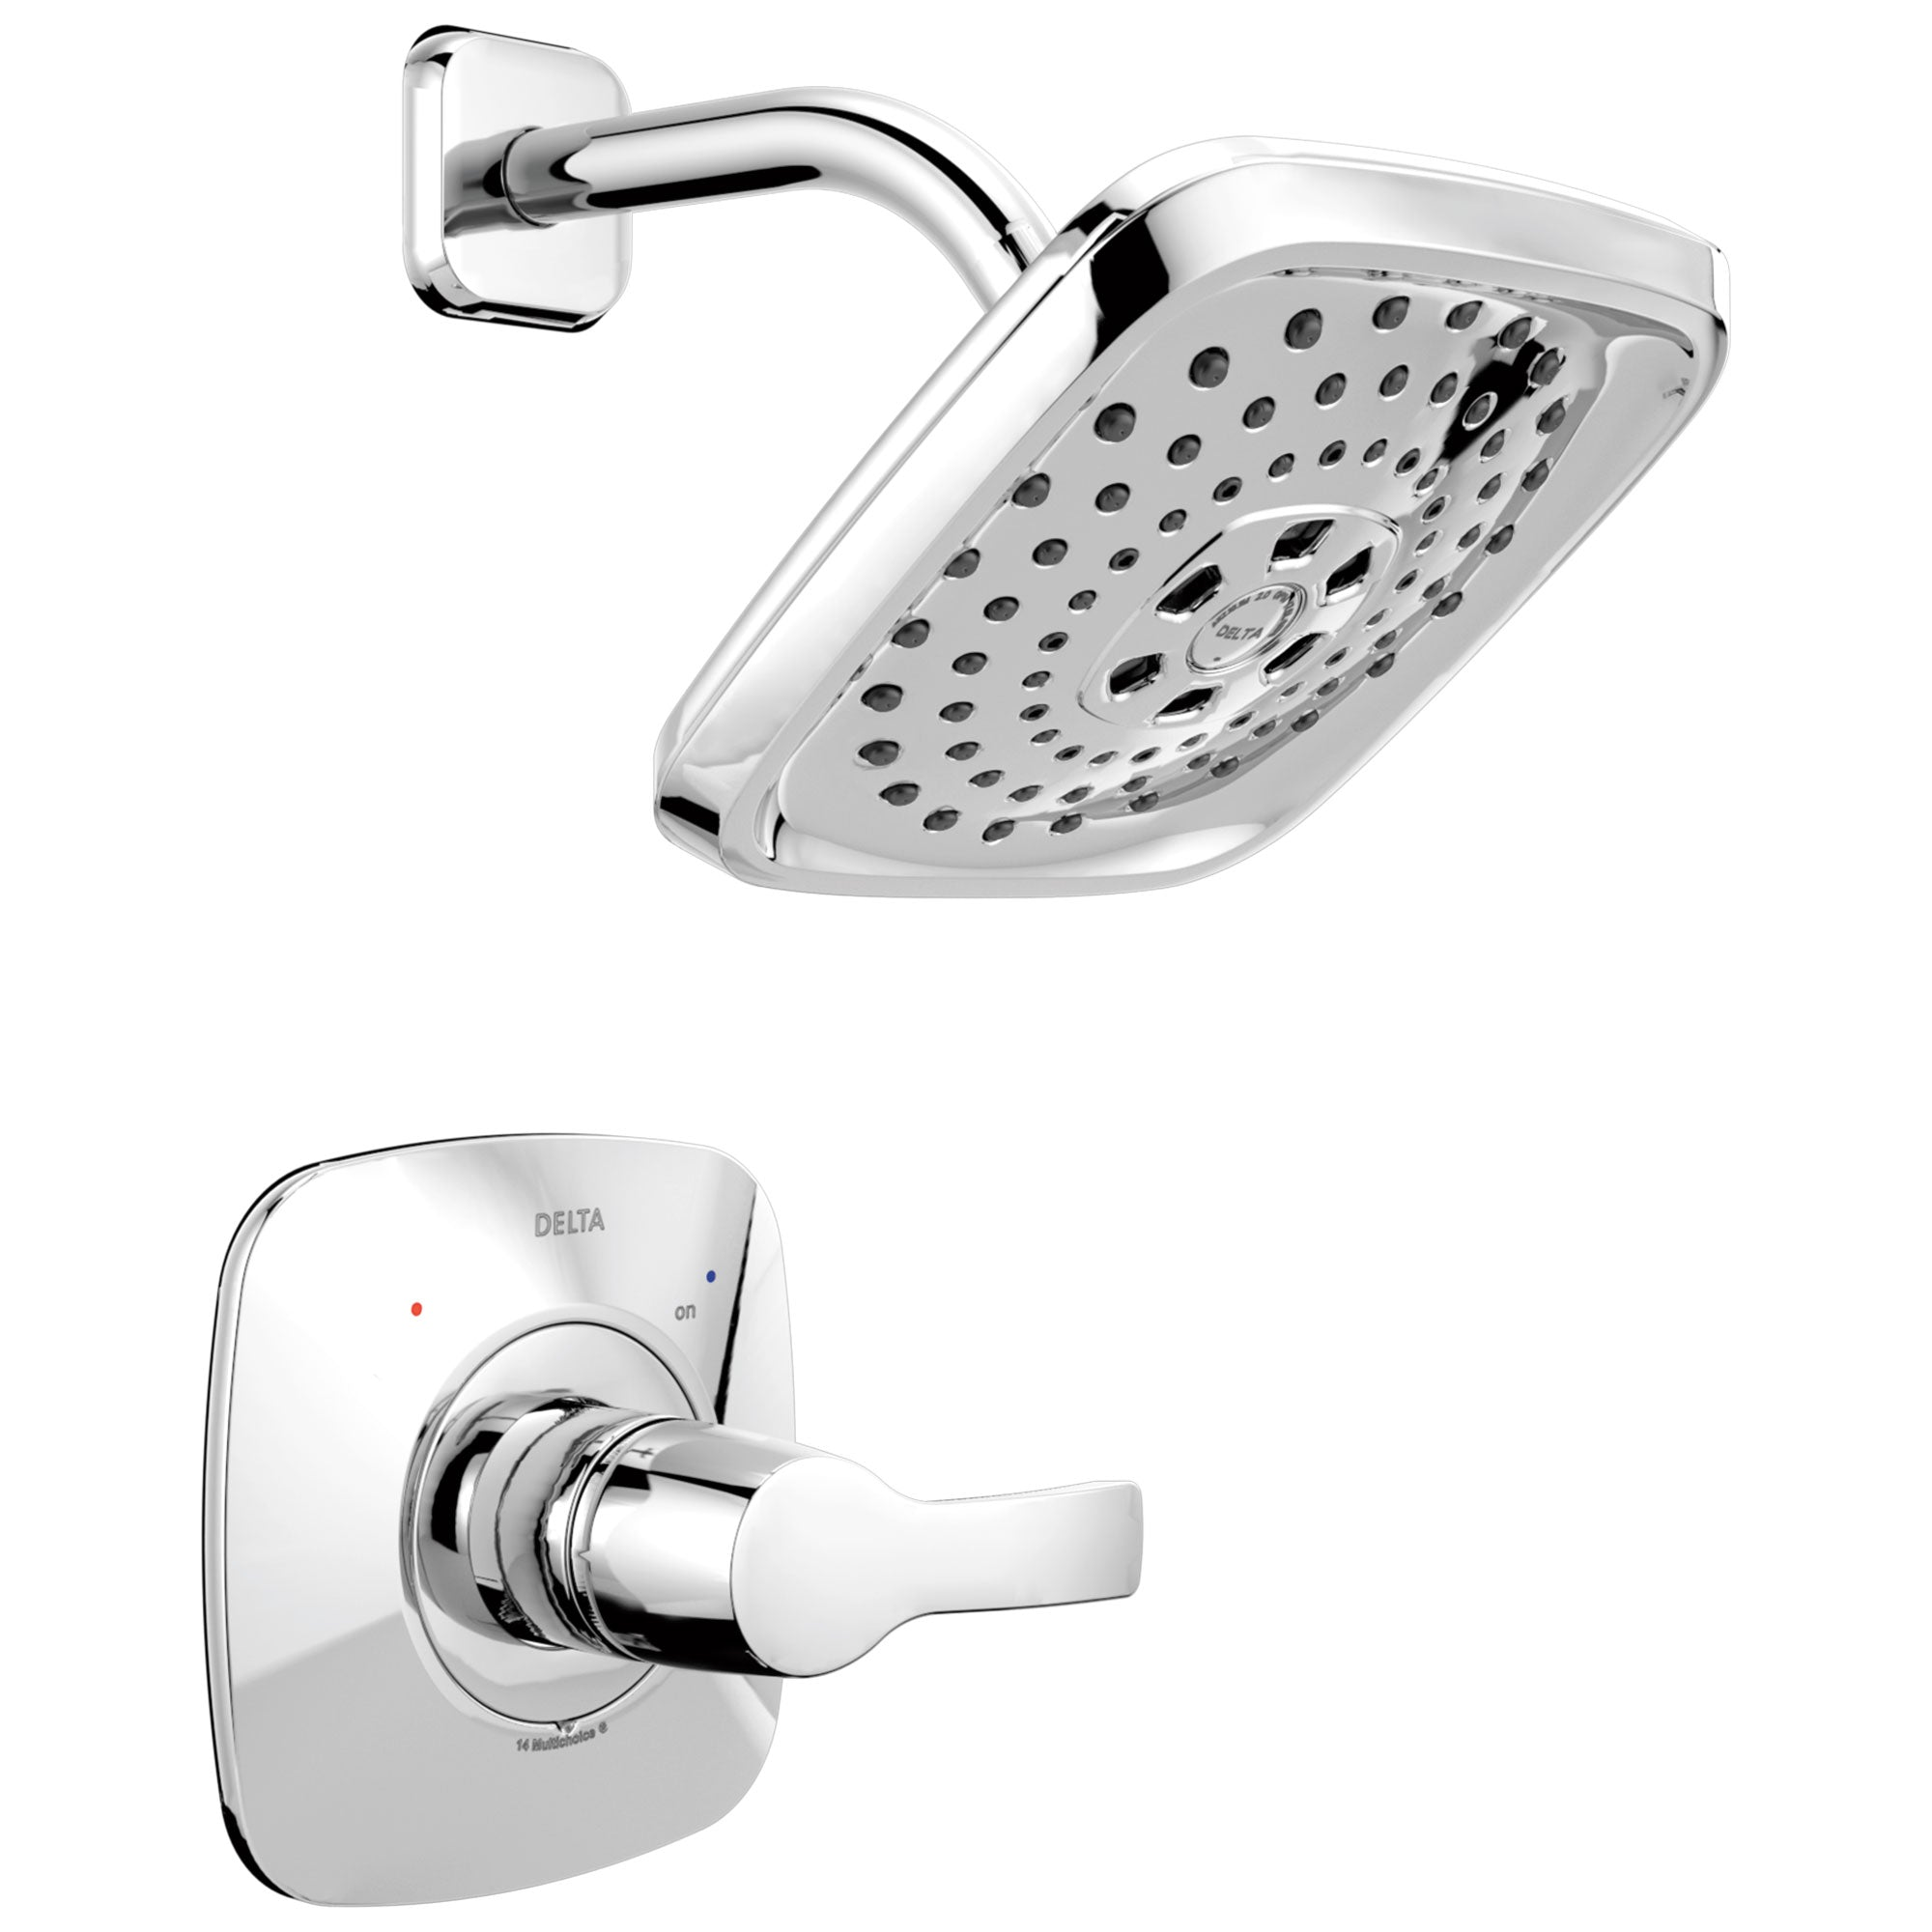 Delta Tesla H2Okinetic 1-Handle Shower Faucet in Chrome Includes Rough-in Valve without Stops D2588V